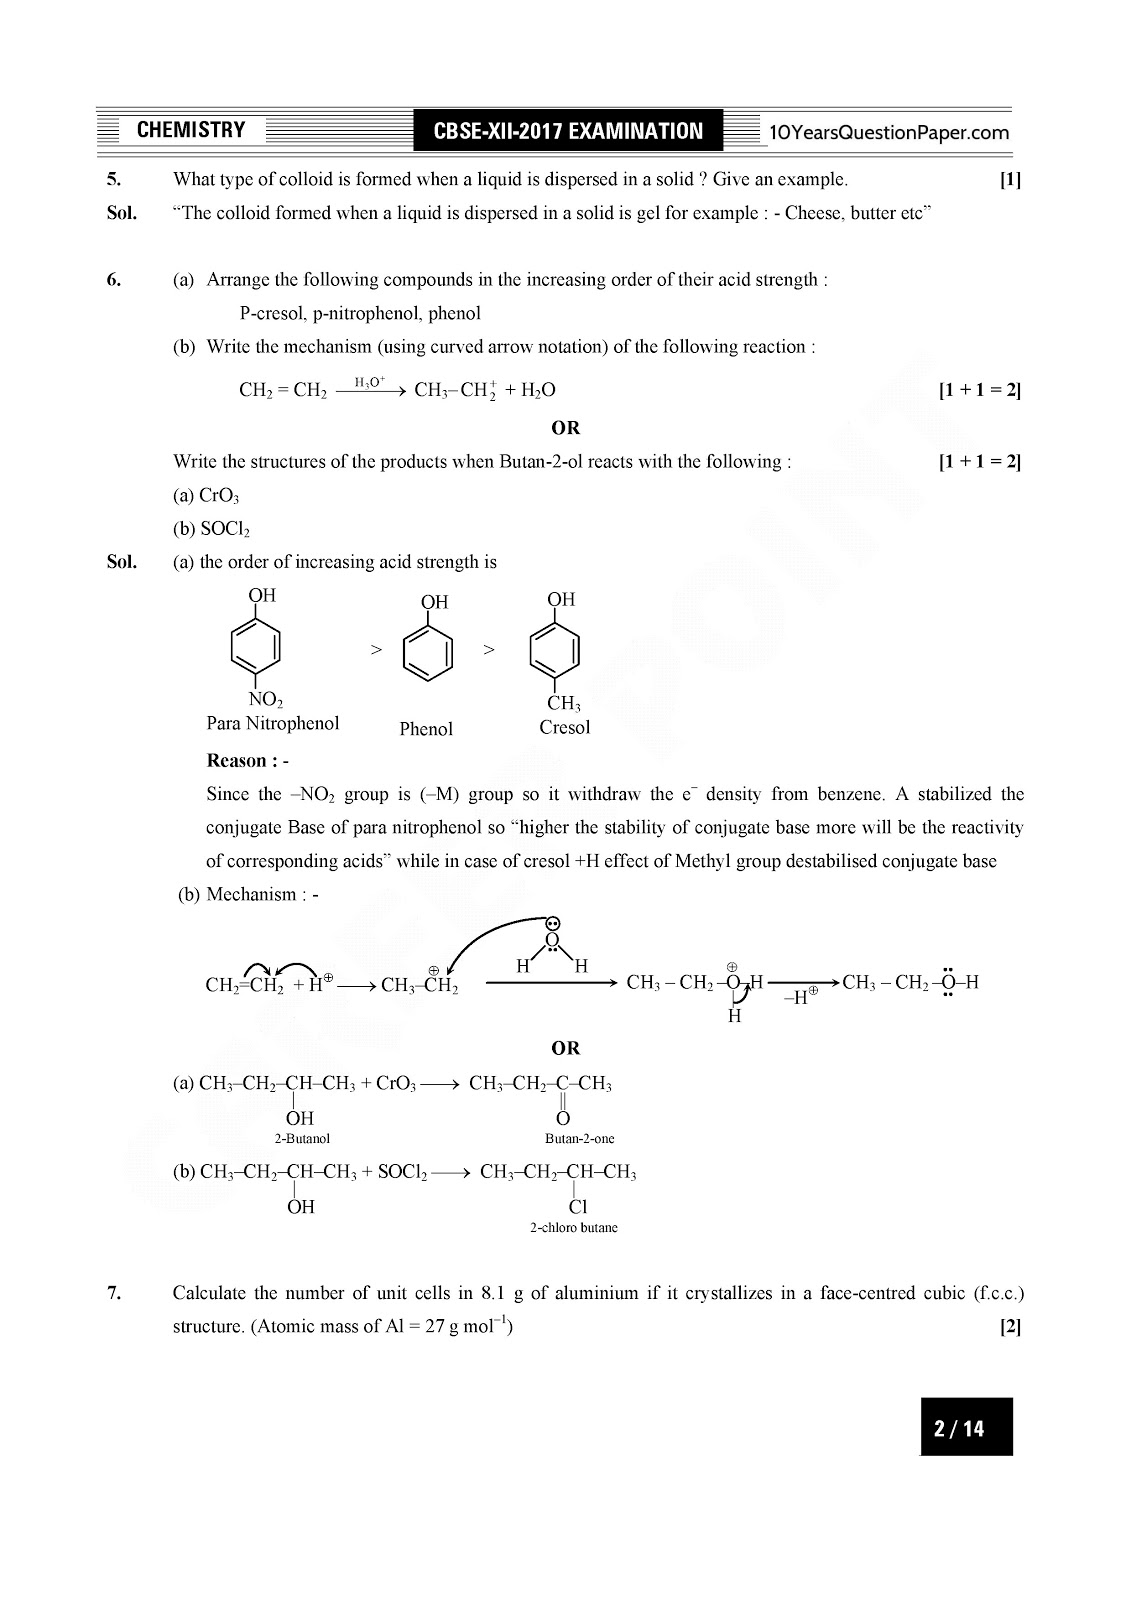 CBSE Class 12 Chemistry 2017 Solved Question Paper